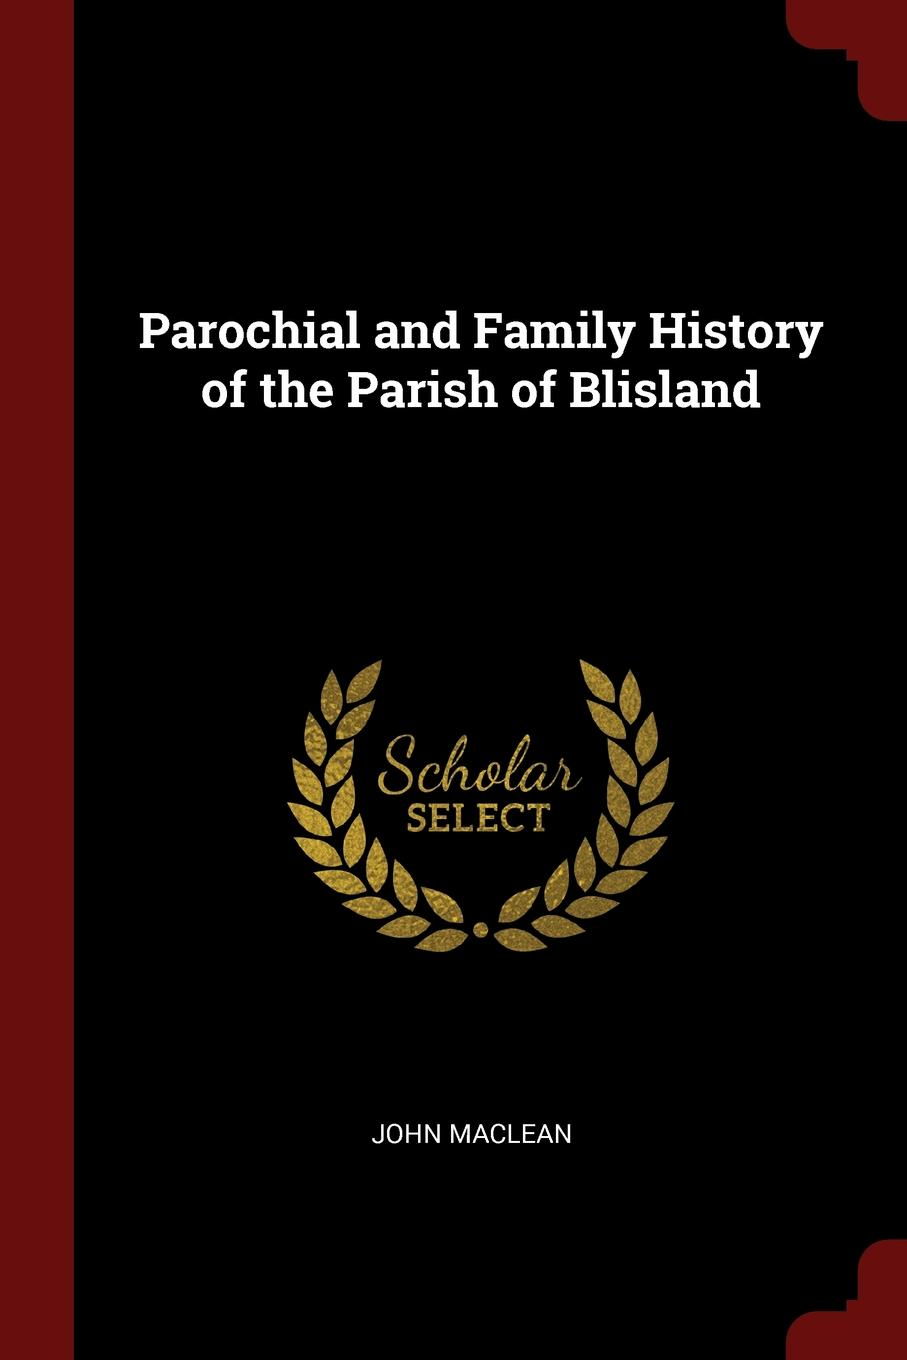 John Maclean Parochial and Family History of the Parish of Blisland